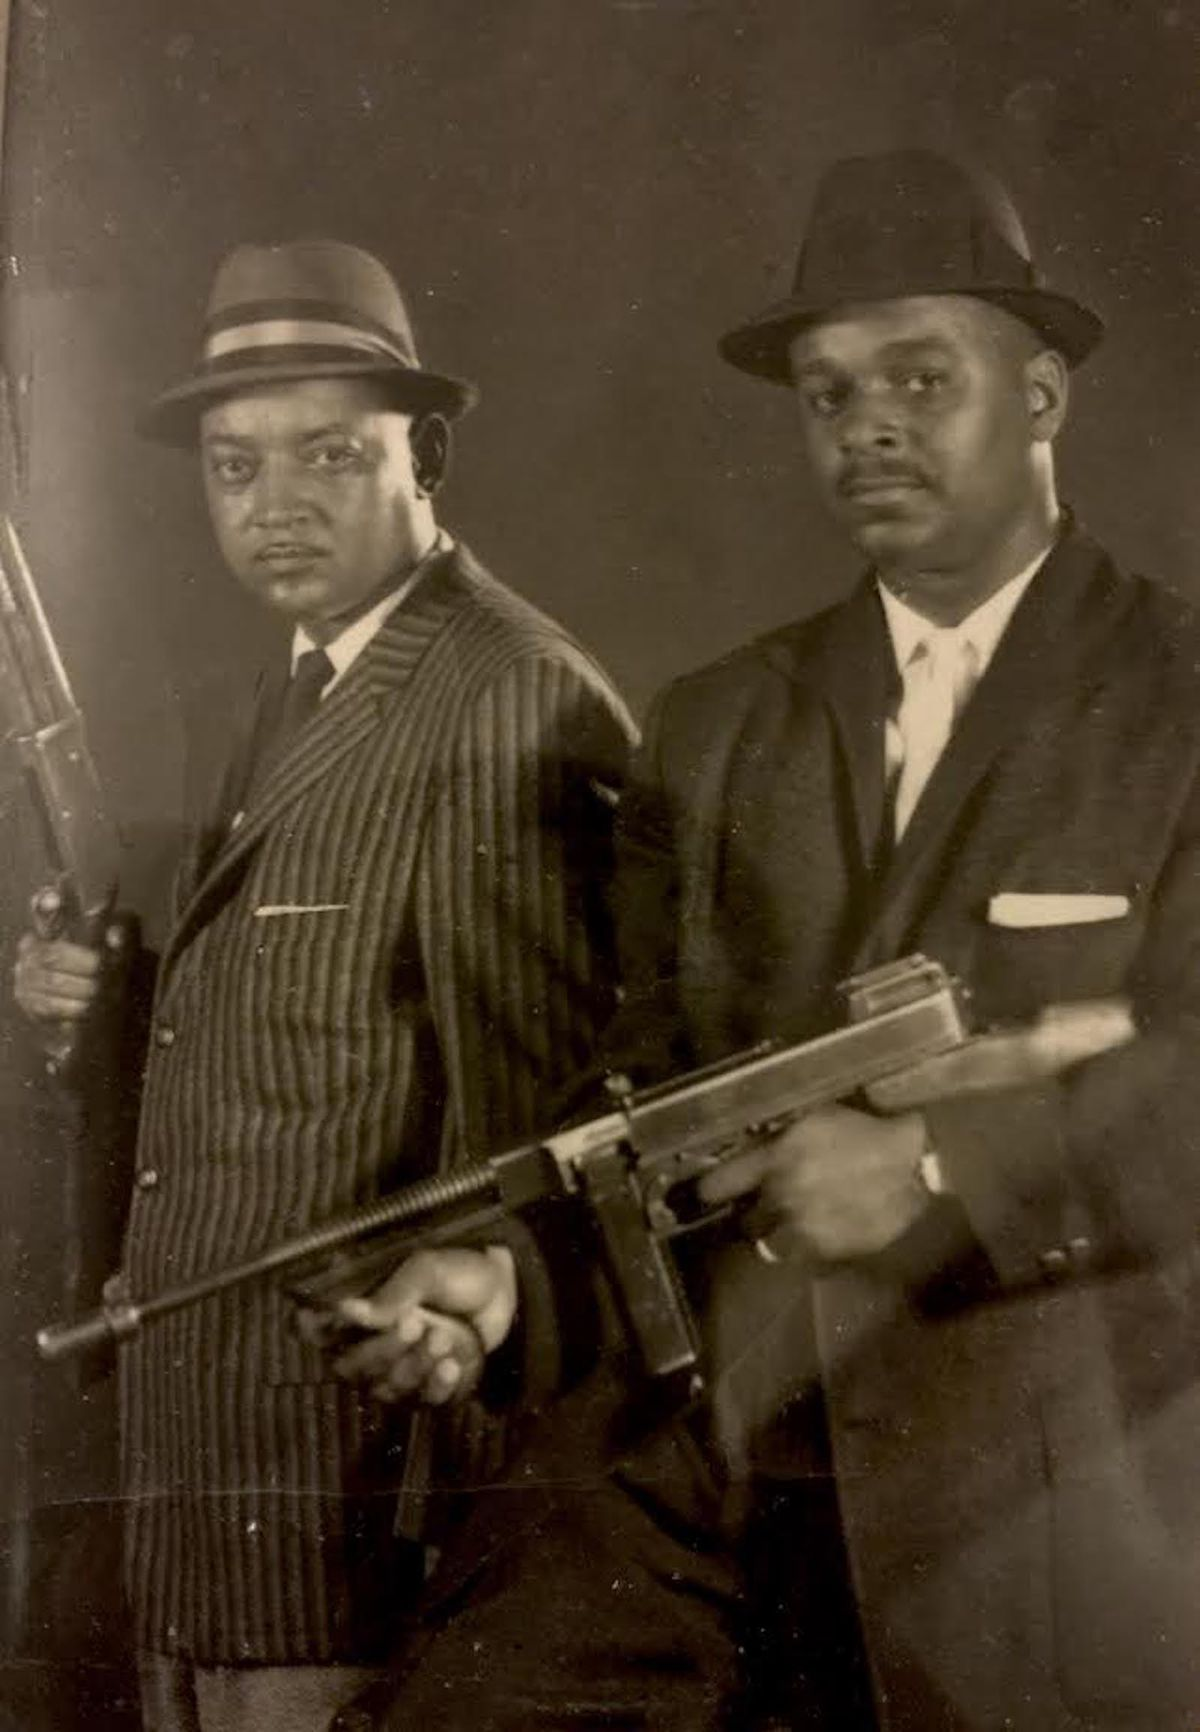 """Detective Clarence Burke Jr. (right) and his partner Luceke """"Zeke"""" Mays were credited with solving many crimes when they worked at the Chicago Police Department. """"That's how they always looked — sharp and ready,"""" said Mr. Burke's son Keni."""